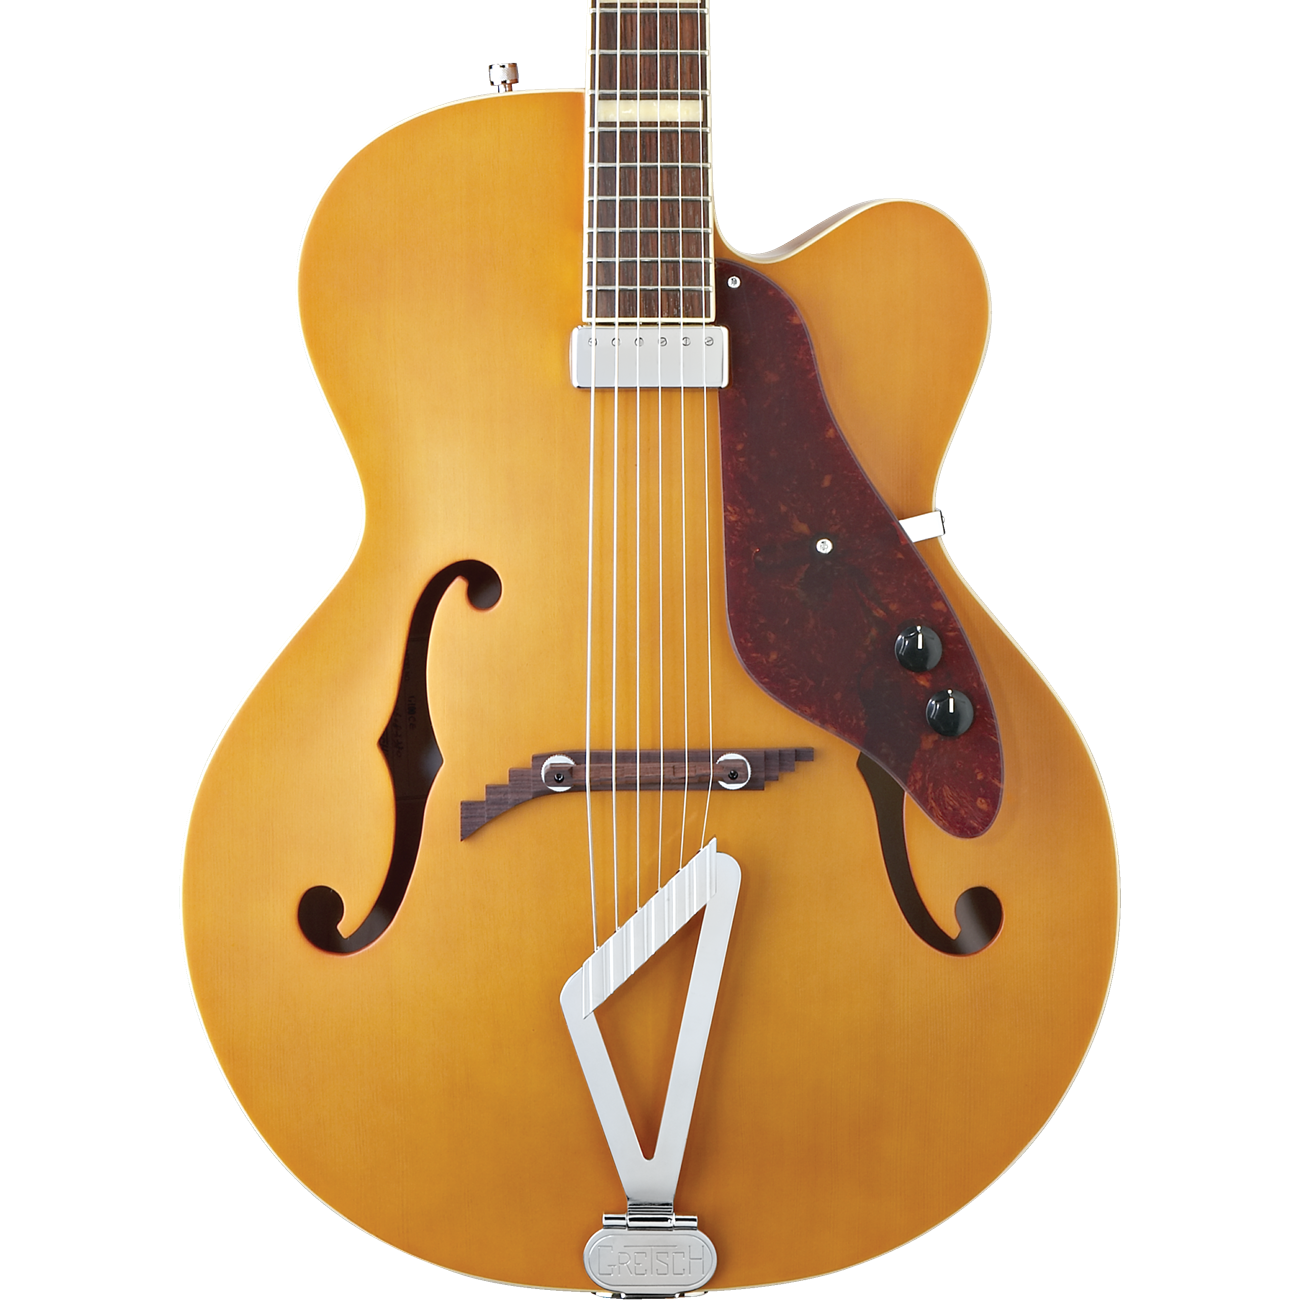 Gretsch G100CE AN Synchromatic Archtop Single-Cut - Rosewood Fingerboard, Antique Natural